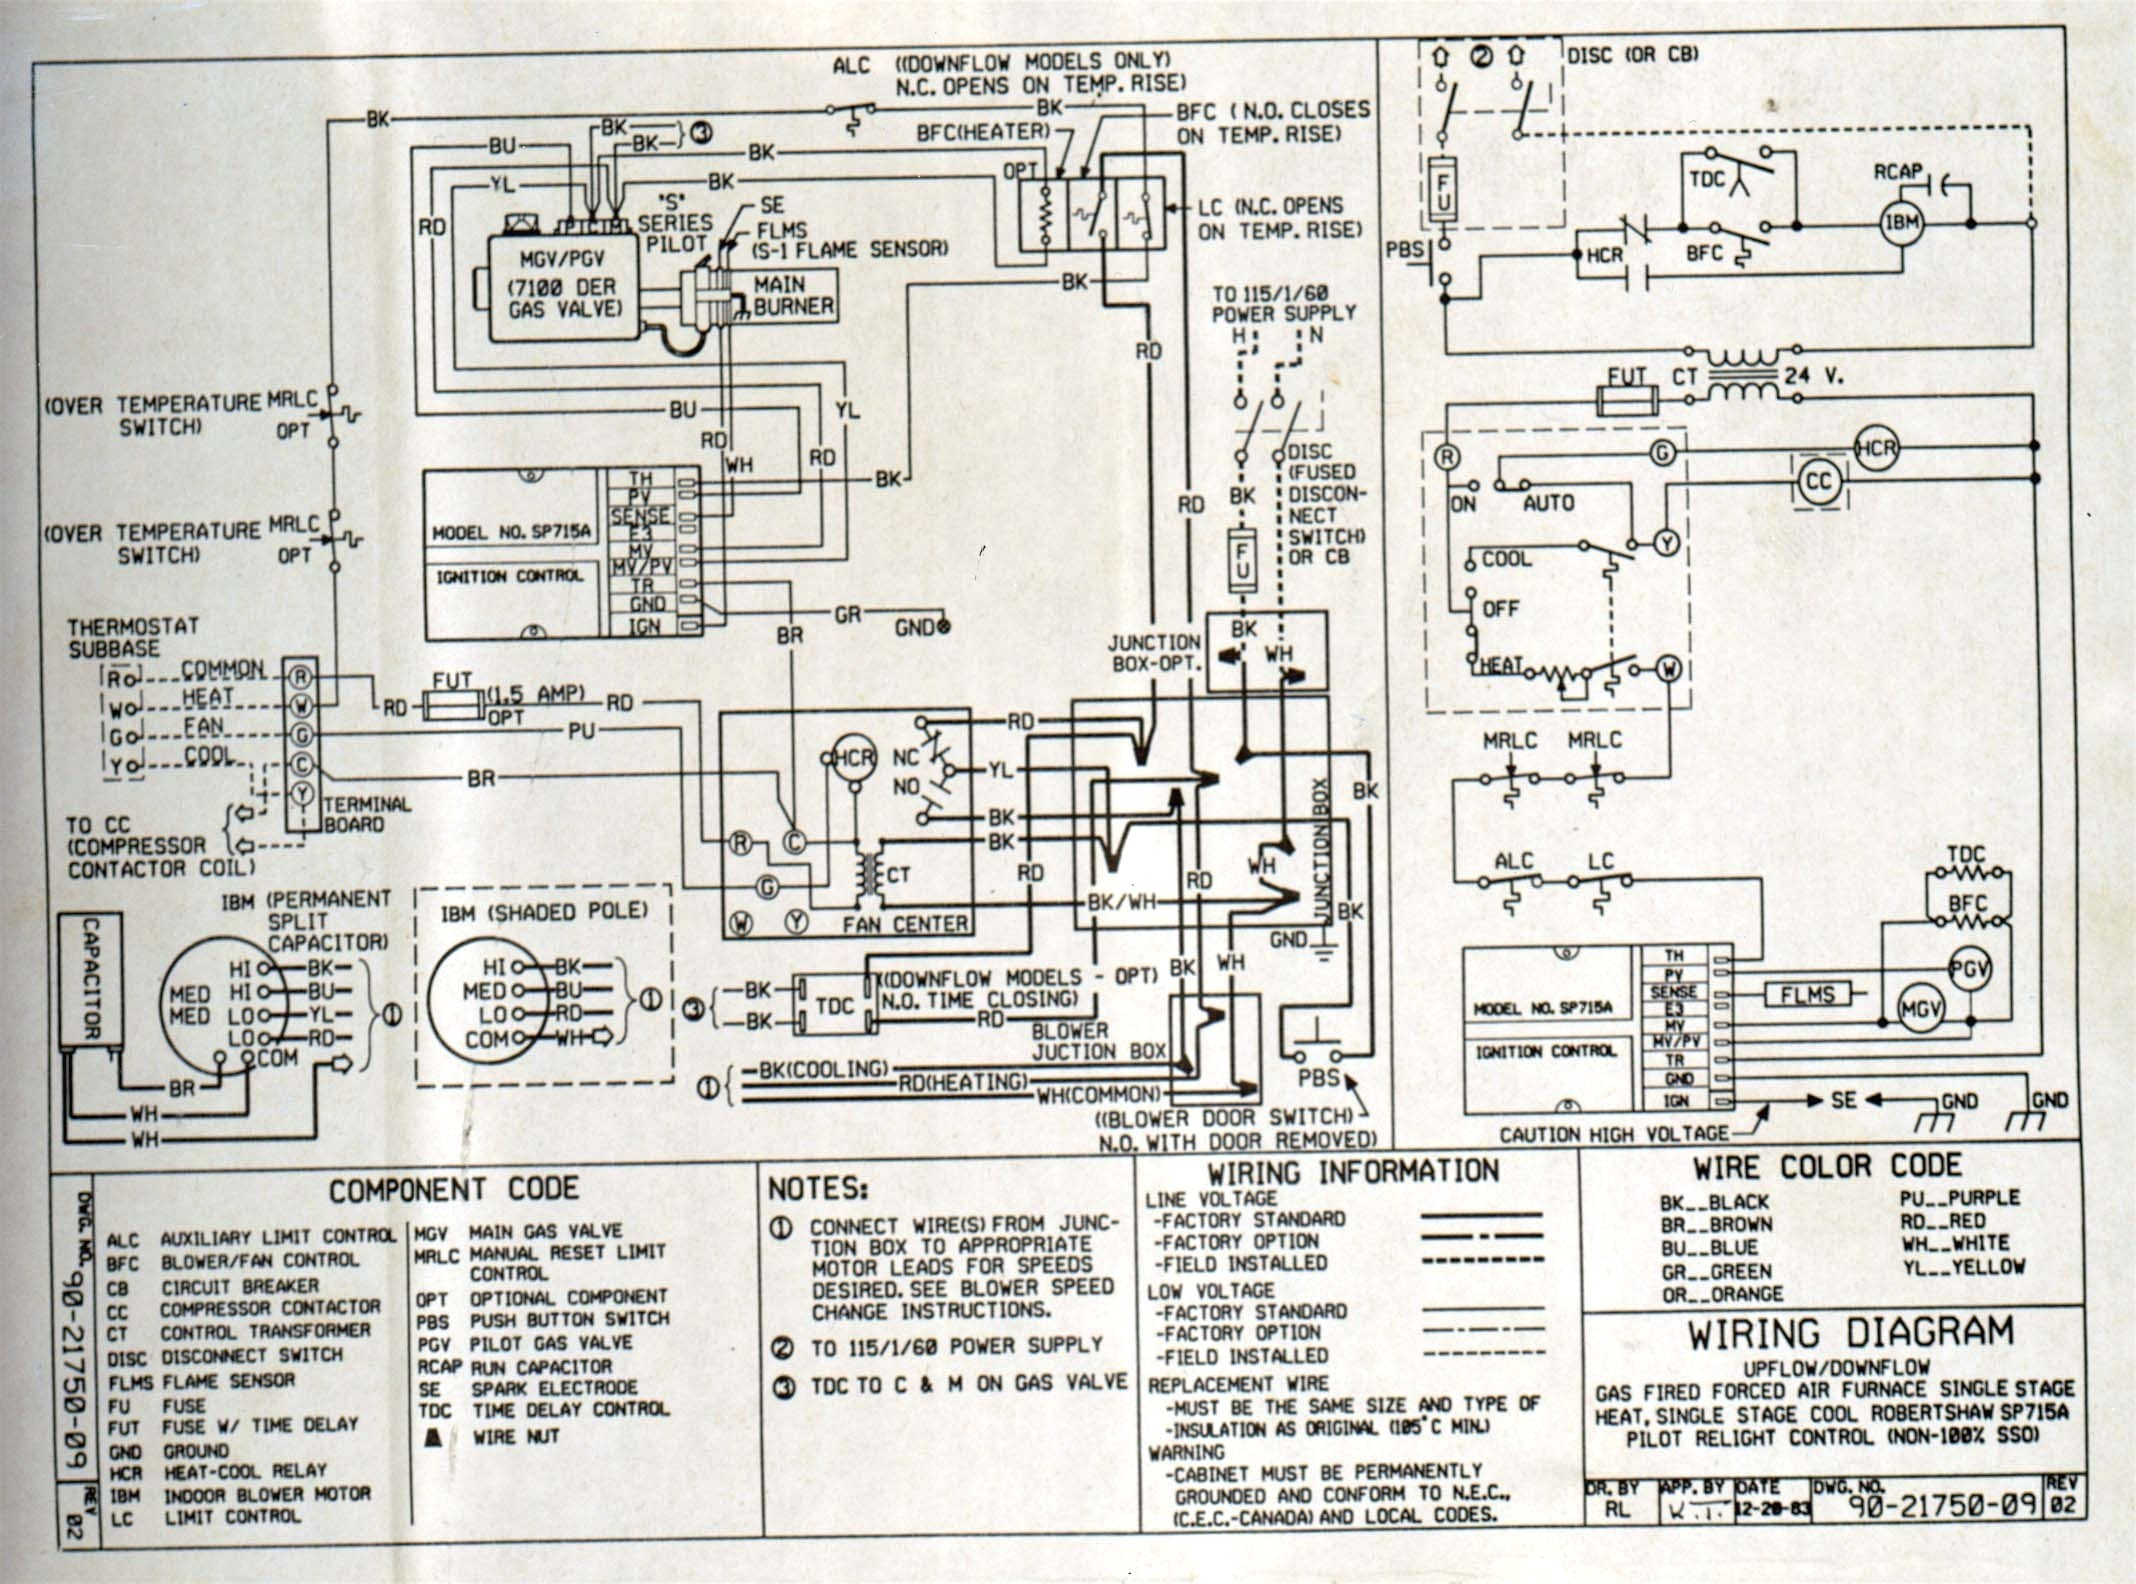 Electric Motor Parts Diagram Ge Induction Motor Wiring Diagram Of Electric Motor Parts Diagram